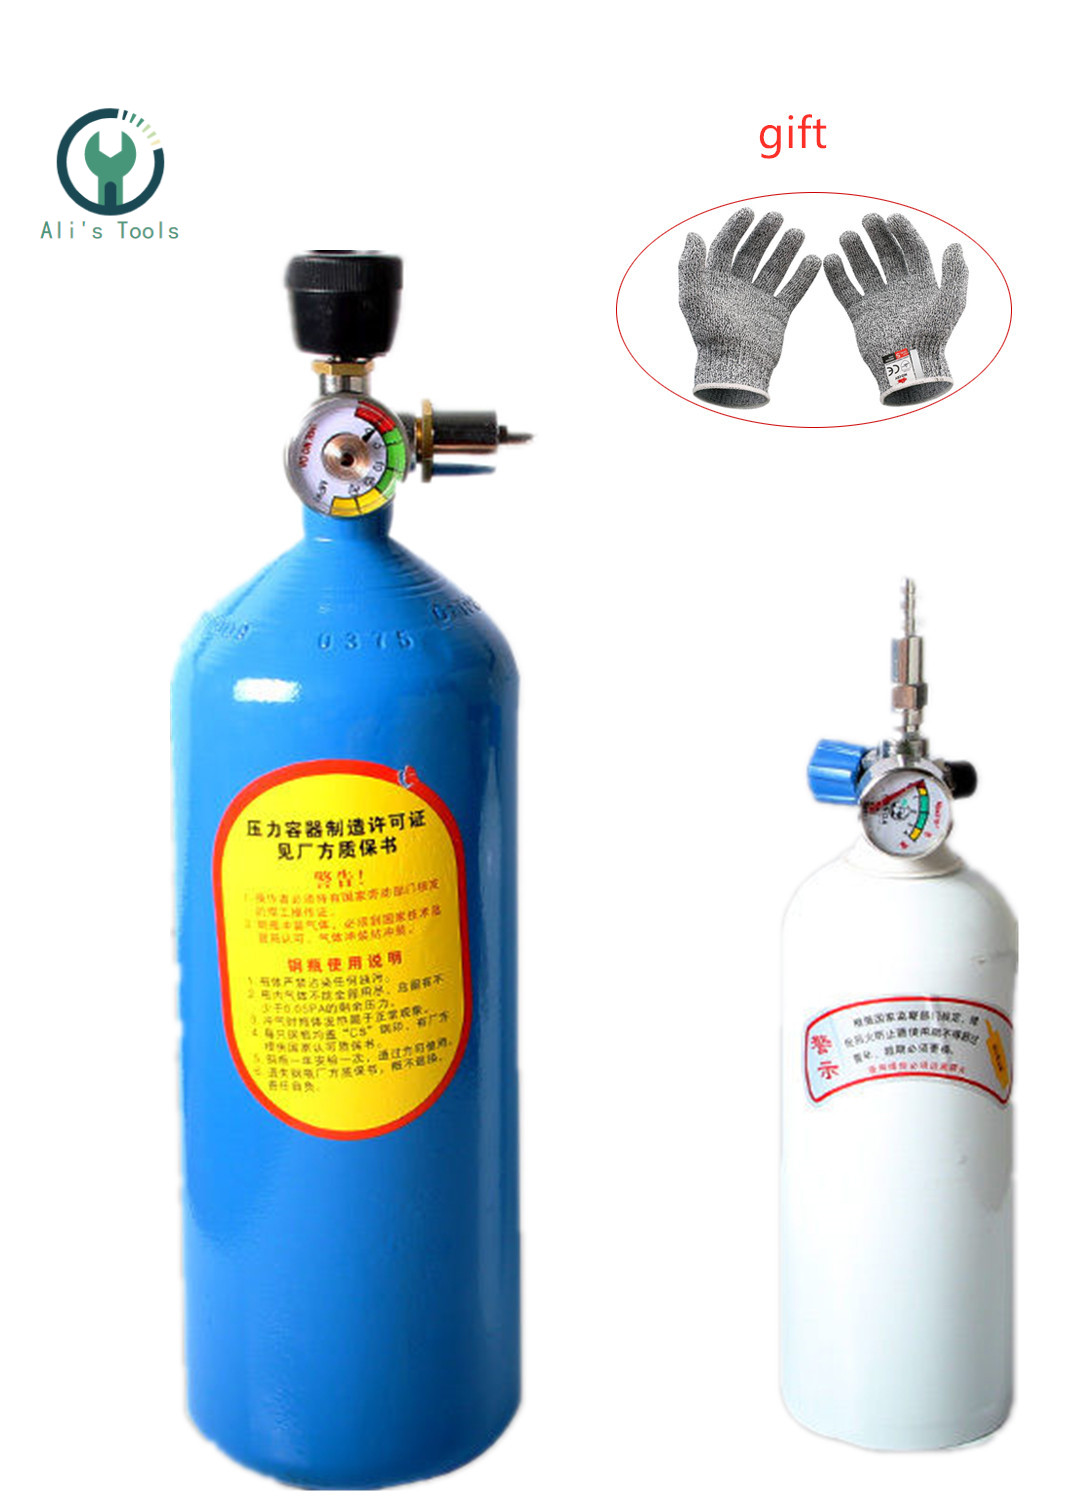 2L Portable Torch Set Refrigeration Repair Tool Air Conditioning Copper Tube Welding Torch Oxygen Torch Gas Welding Equipment